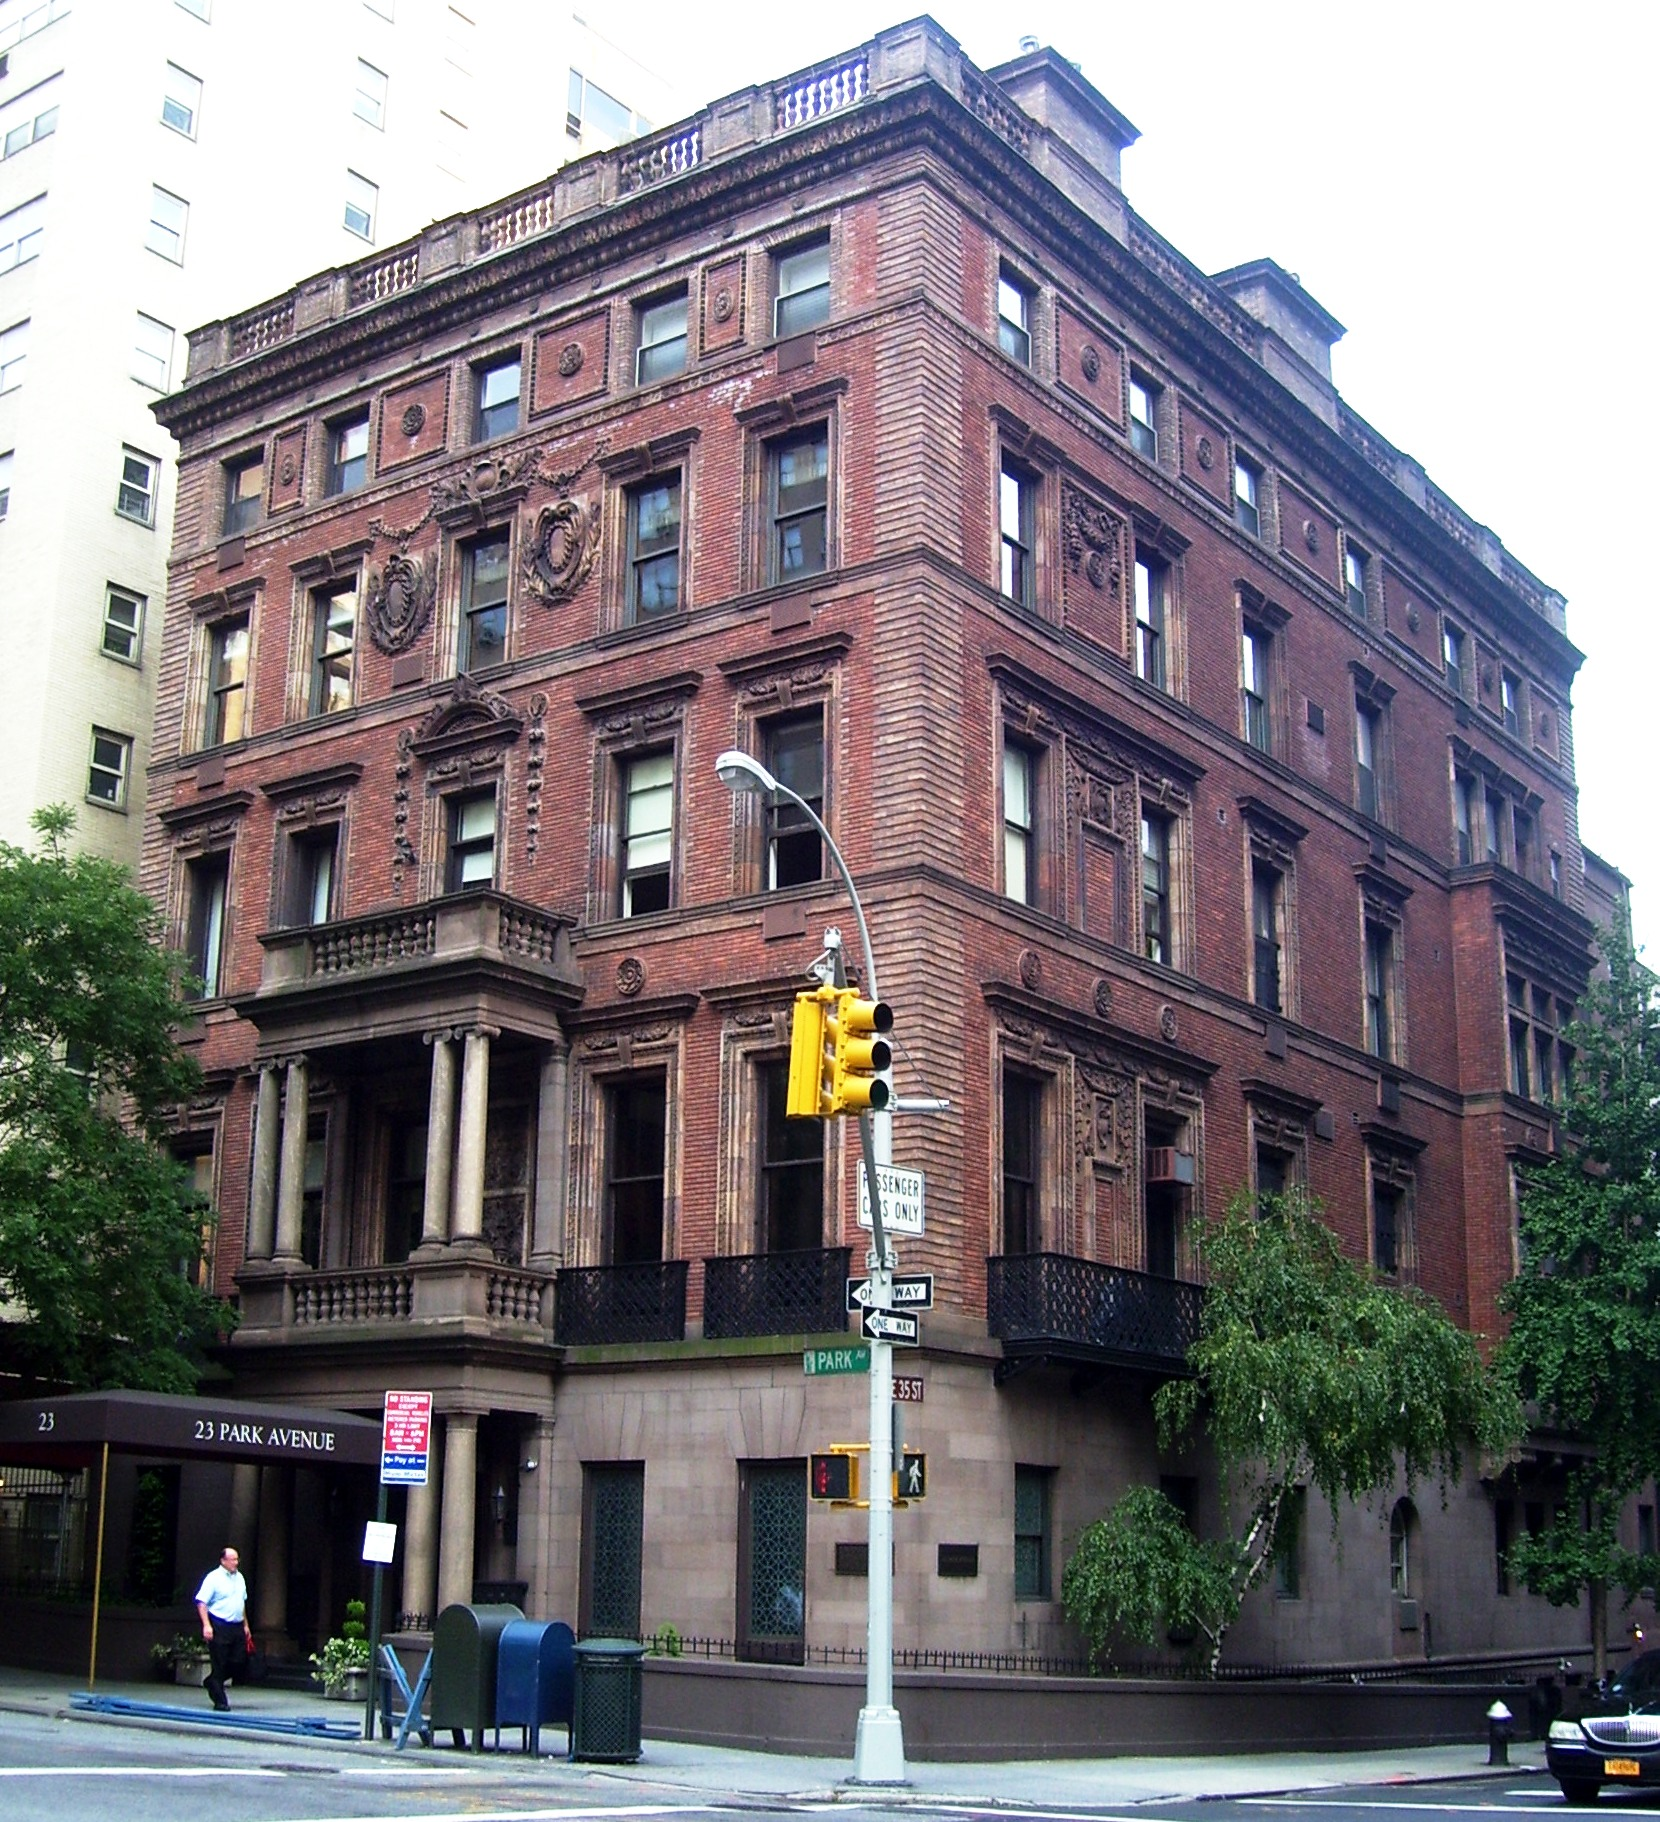 Apartment Complexes Nyc: File:23 Park Avenue Robb House.jpg